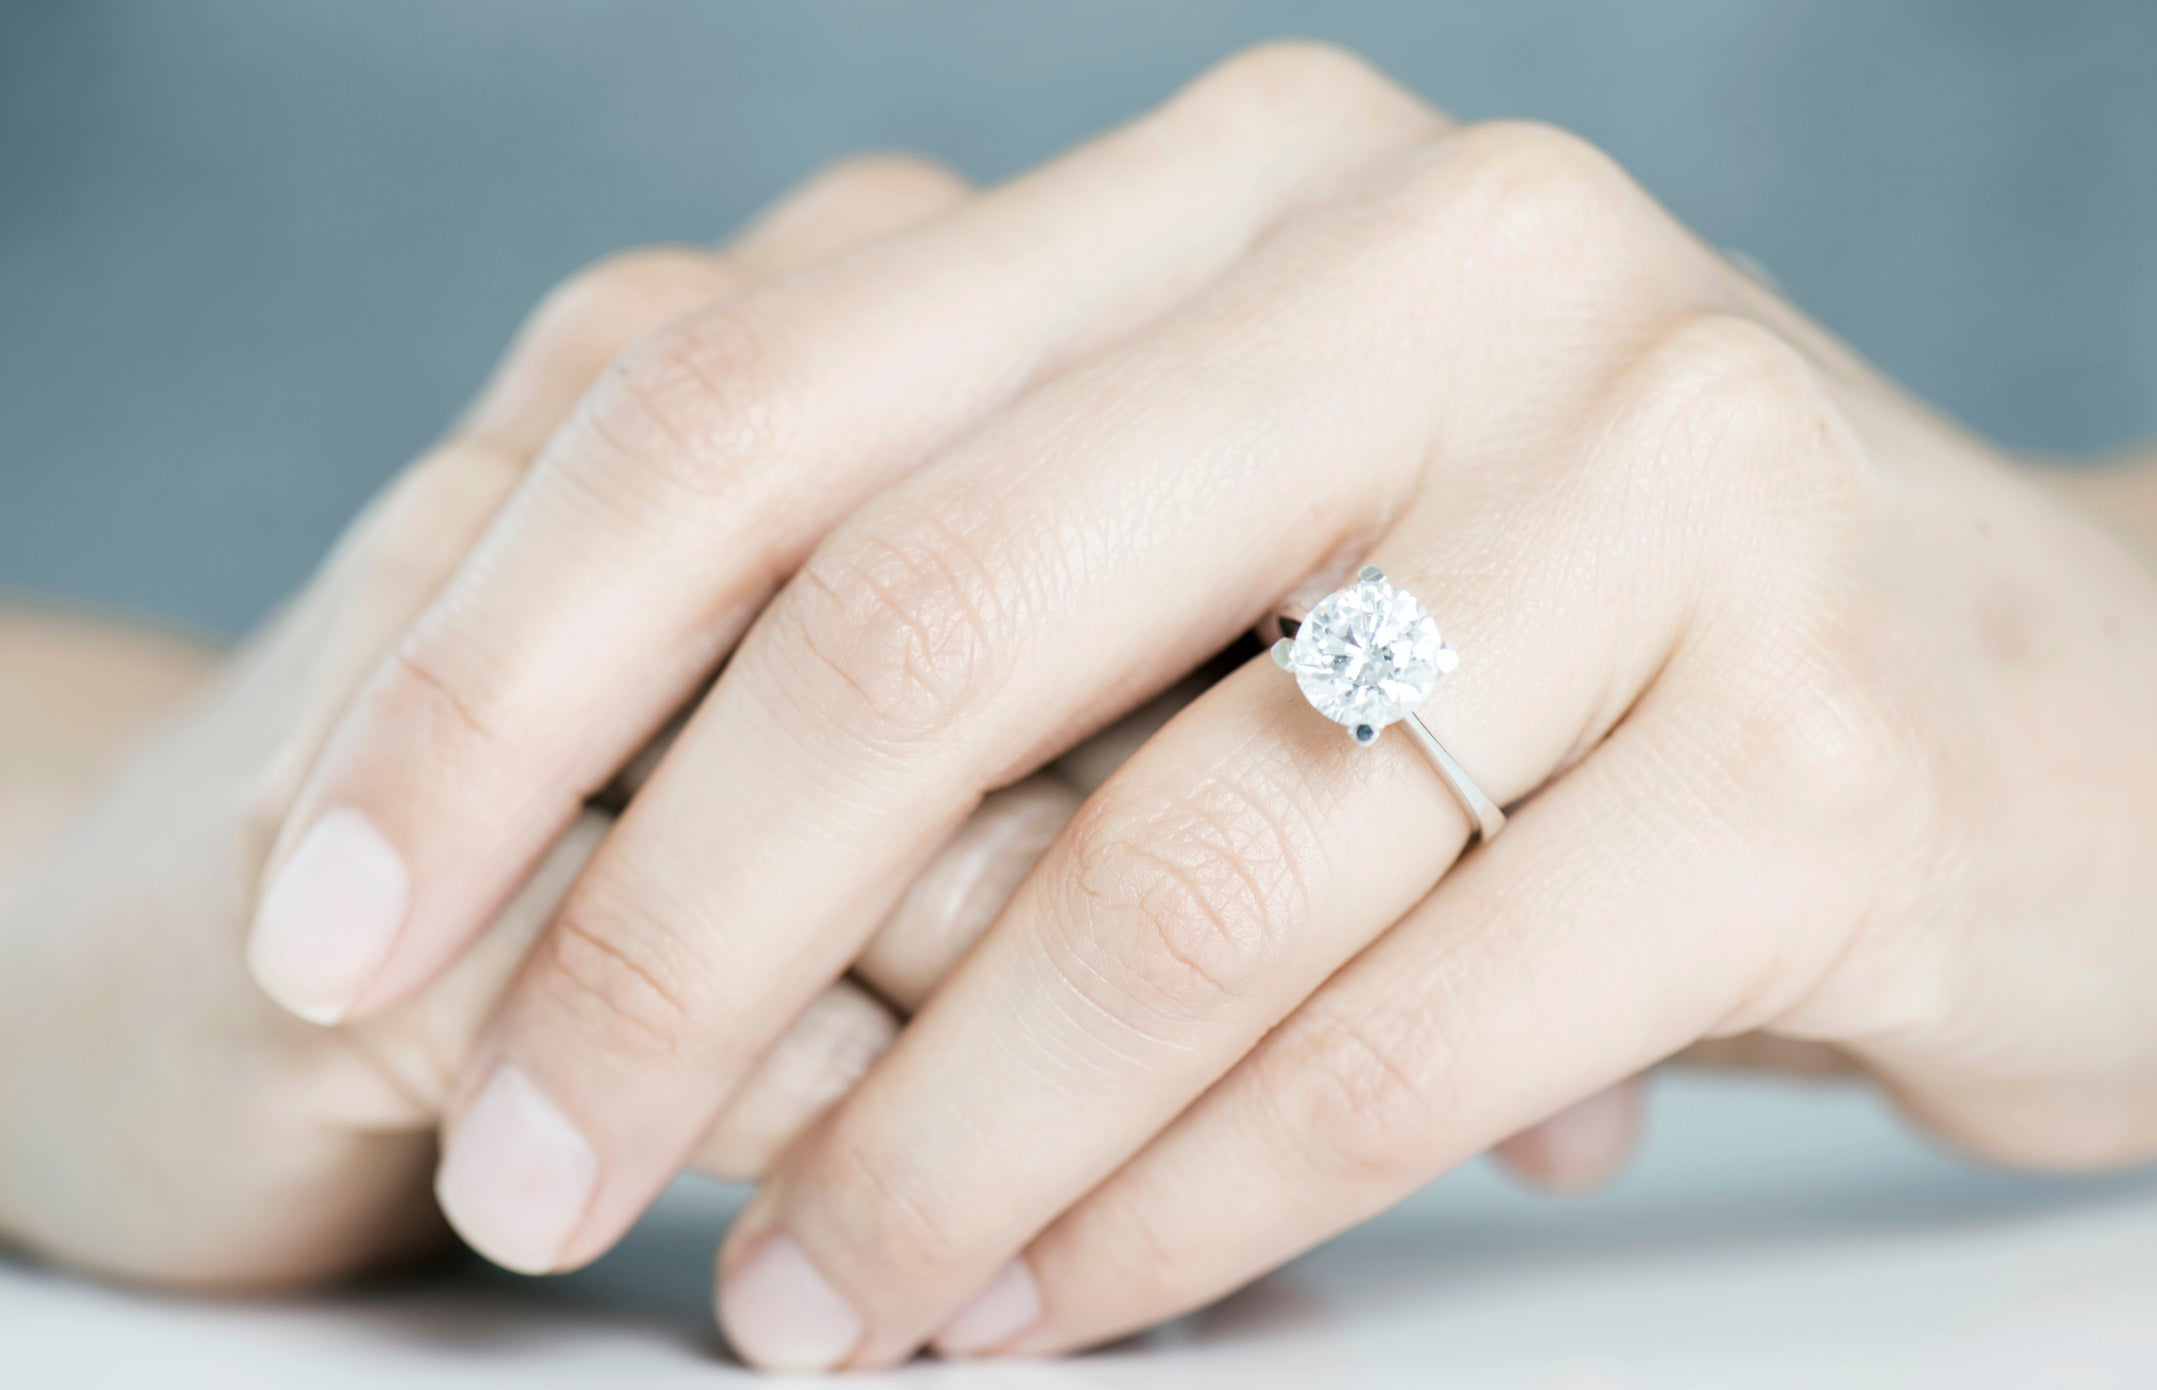 Engagement Rings in London - Shopping Guide